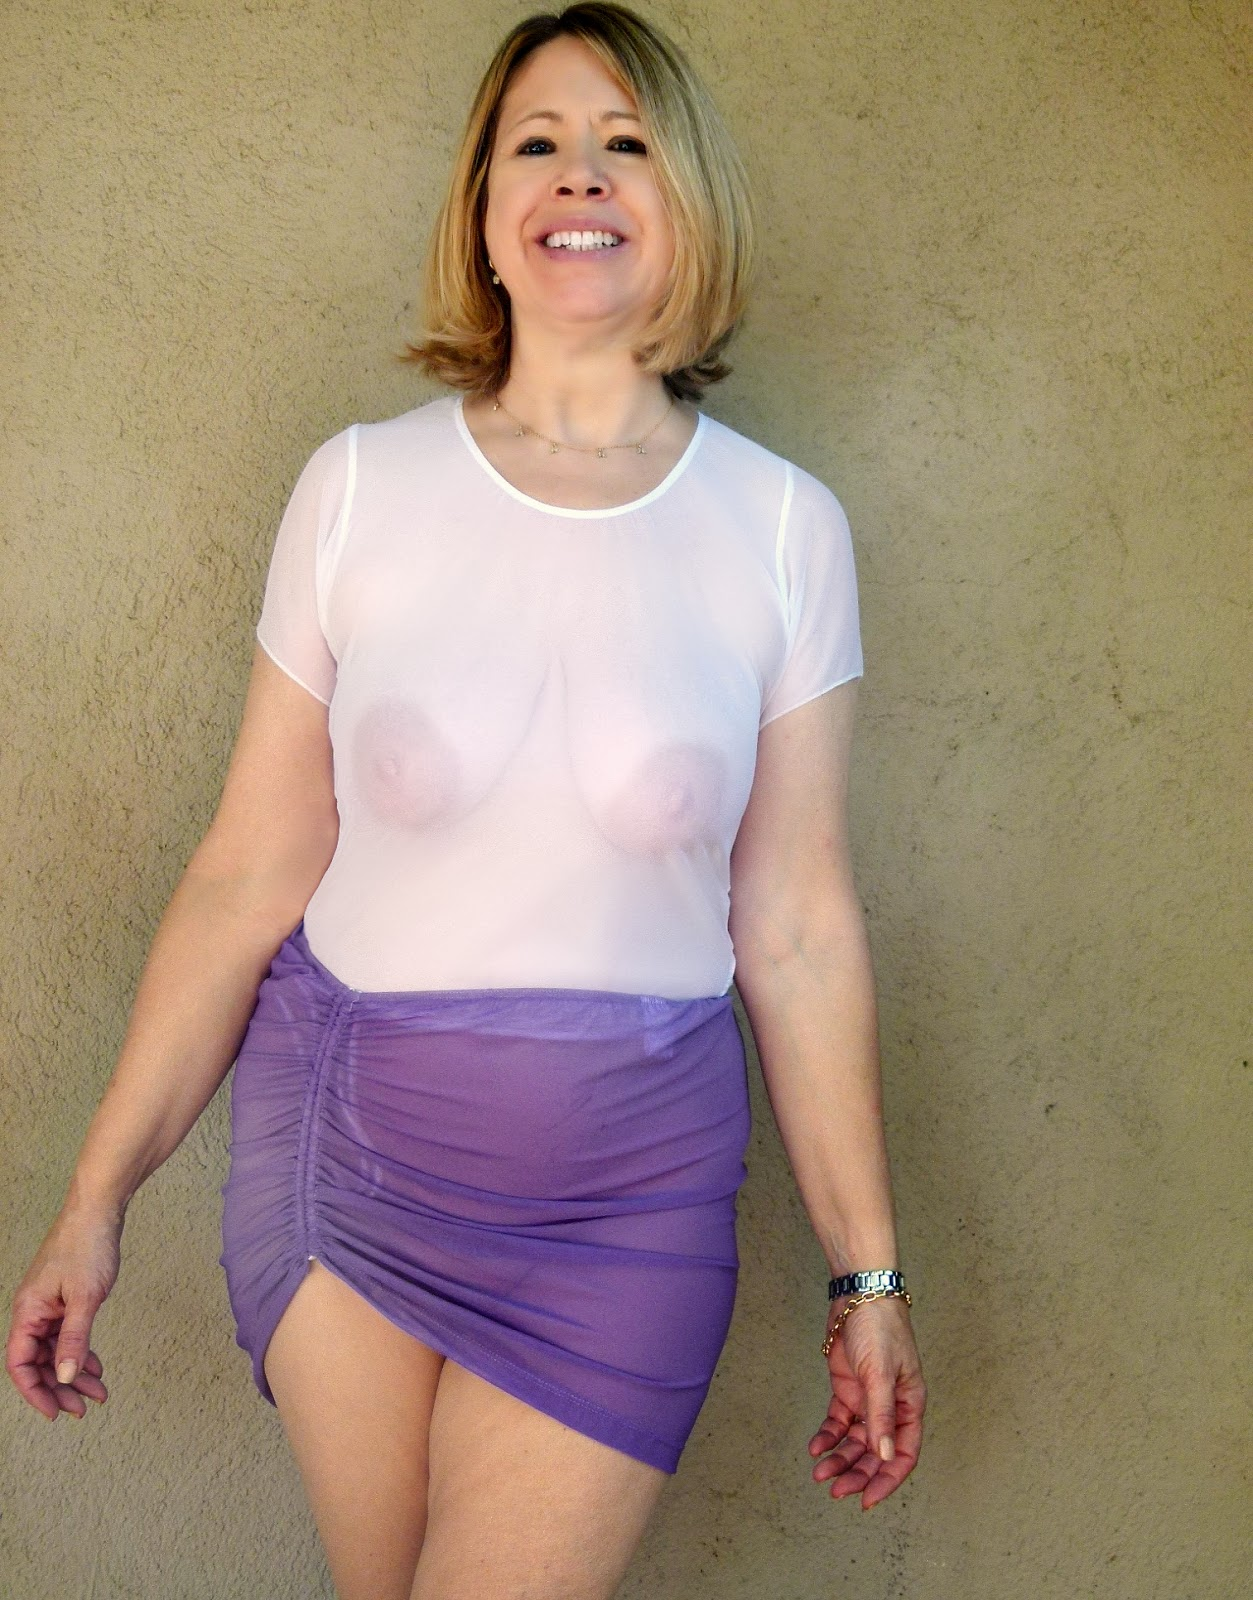 Women wearing see through clothes